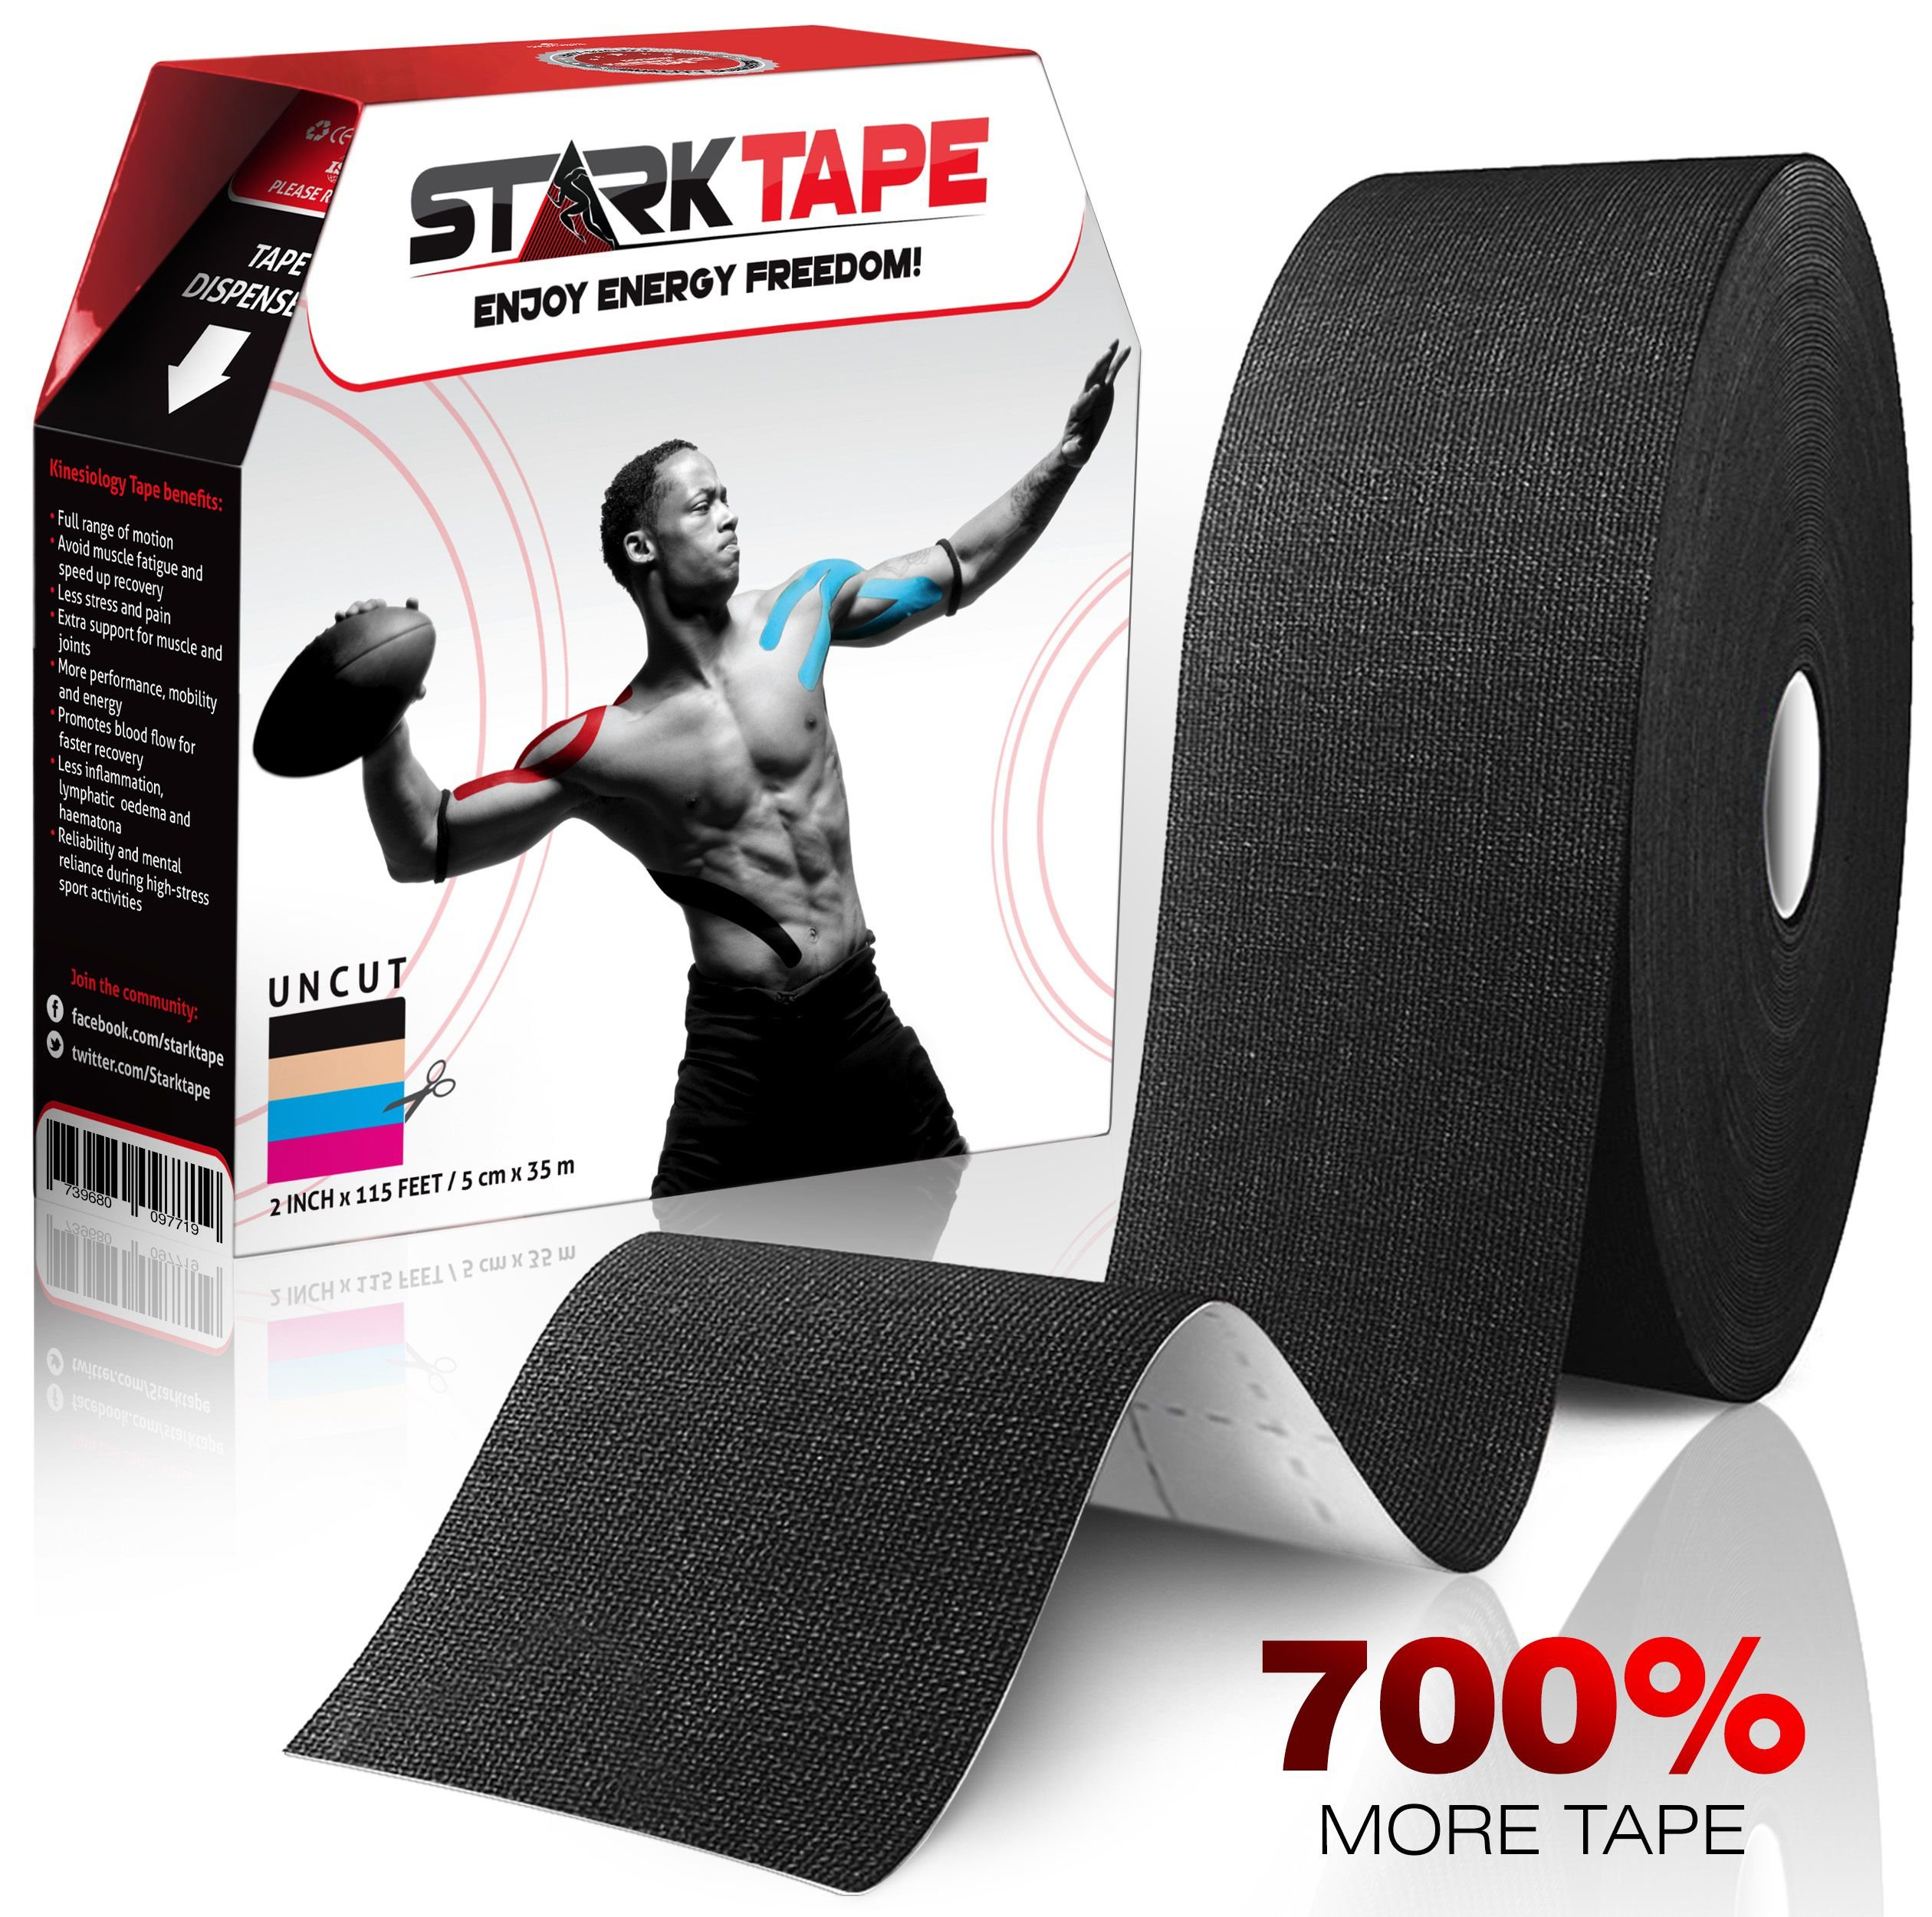 StarkTape Kinesiology Tape for Athletes. Knee Taping, Sports Injuries Tape Ankle Shoulder Wrist Muscle. Sticky Waterproof Latex Free Adhesive. (Black bulk, 5 cm x 35 m)